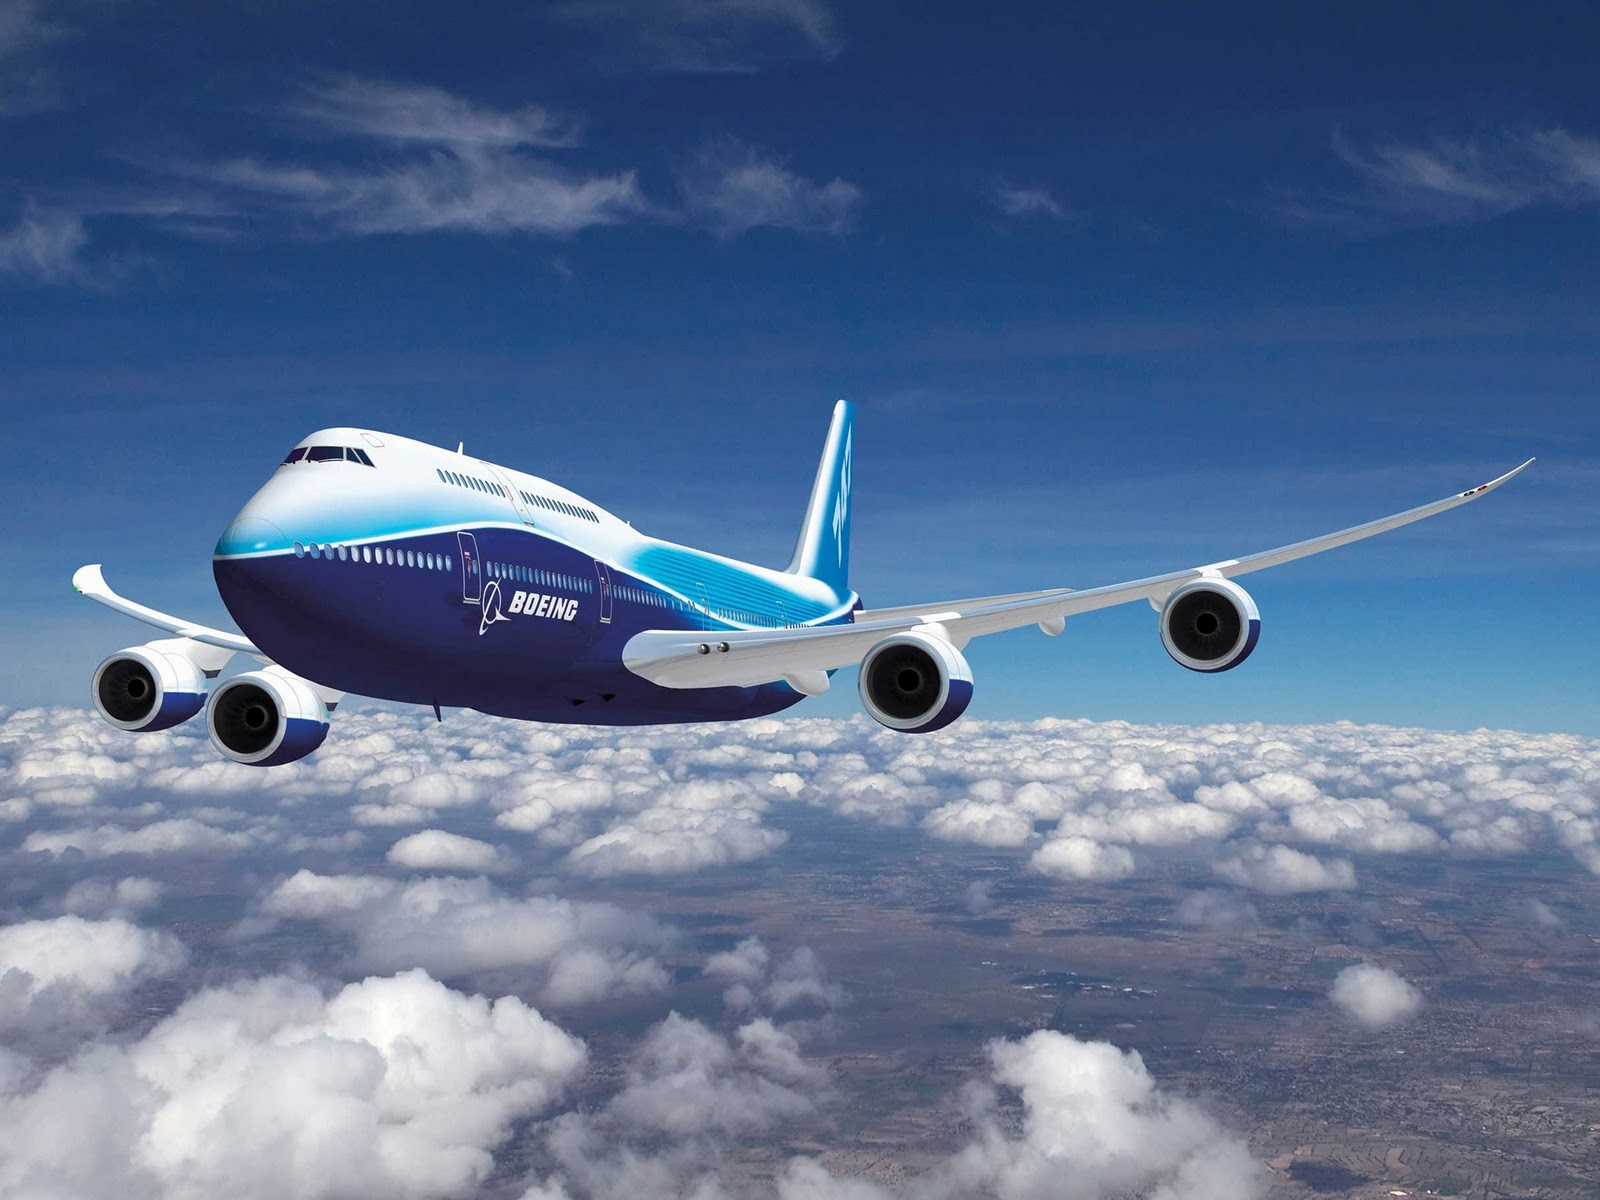 Boeing Airplane Terra Tech Logistics About Us